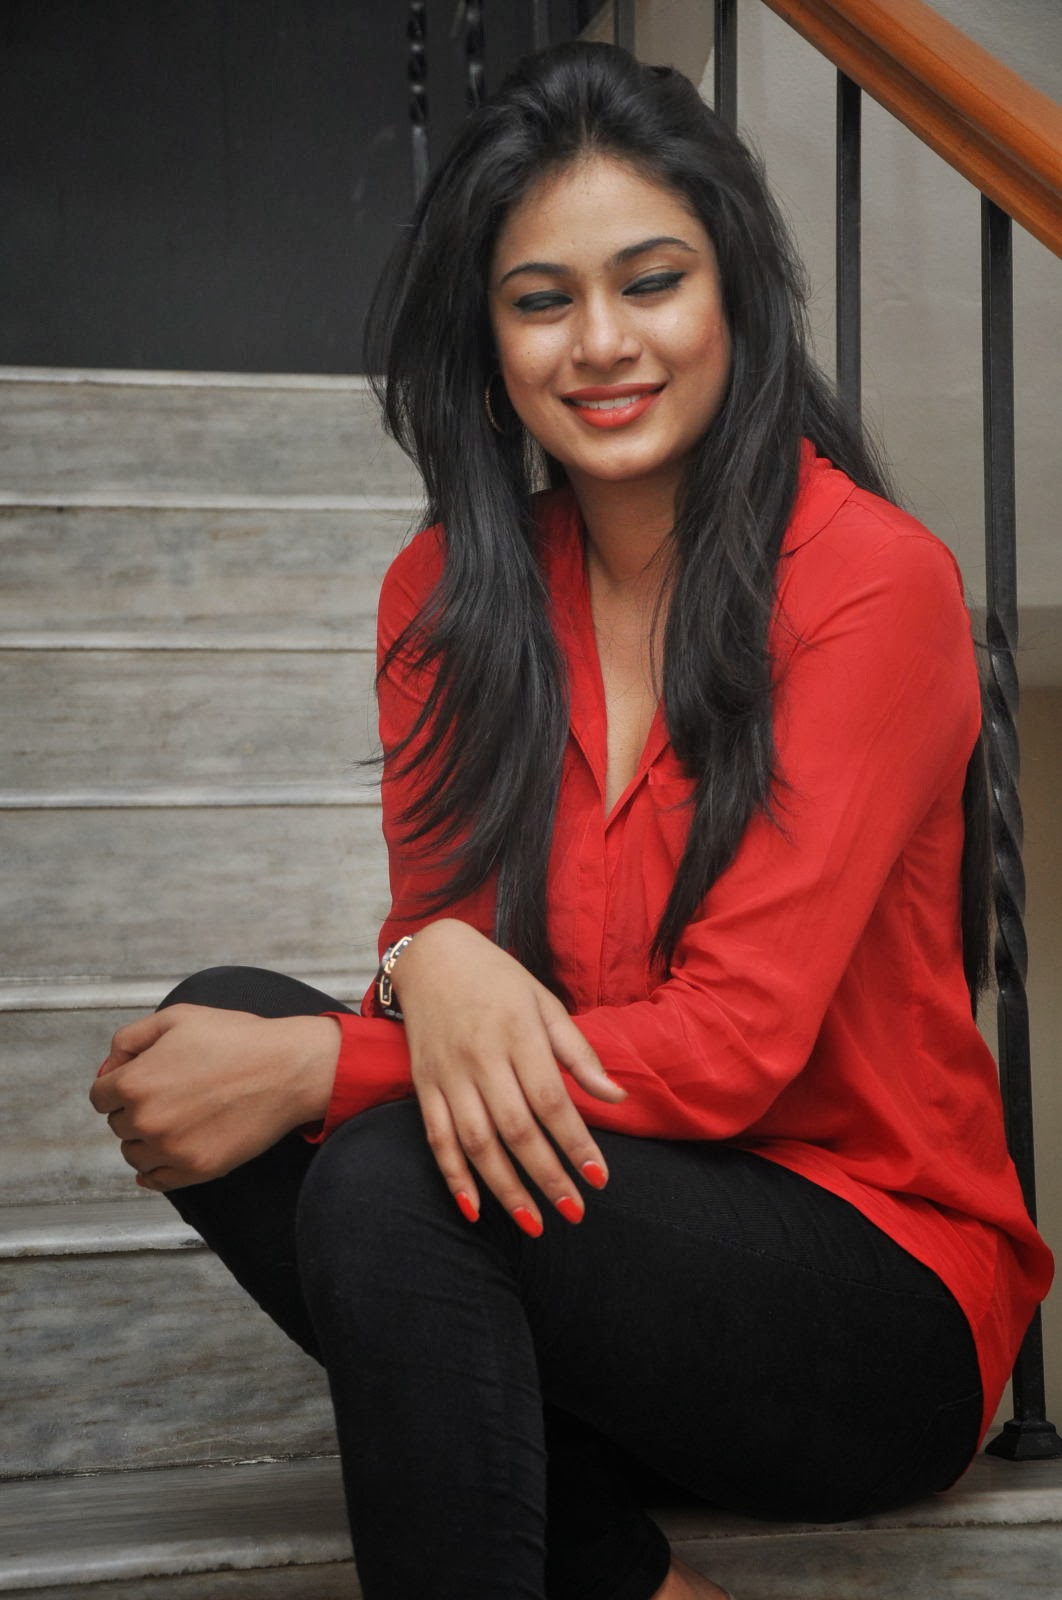 hot sexy Zara shah photo gallery in red top and black jeans Bollywood, Tollywood, foxy, perfect, hot sexy actress sizzling, image gallery